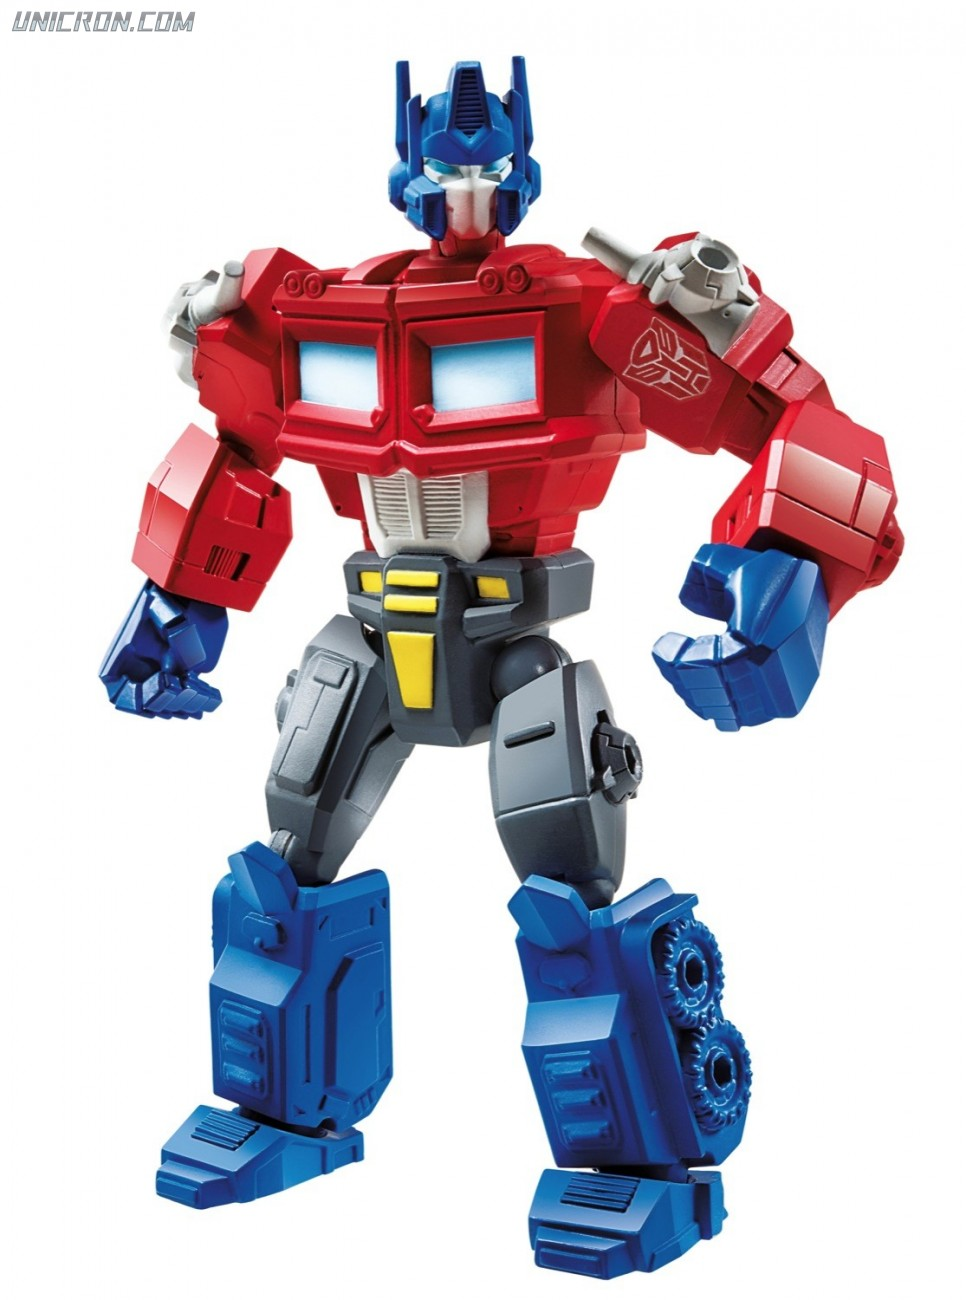 Transformers Hero Mashers Optimus Prime (Hero Mashers) toy